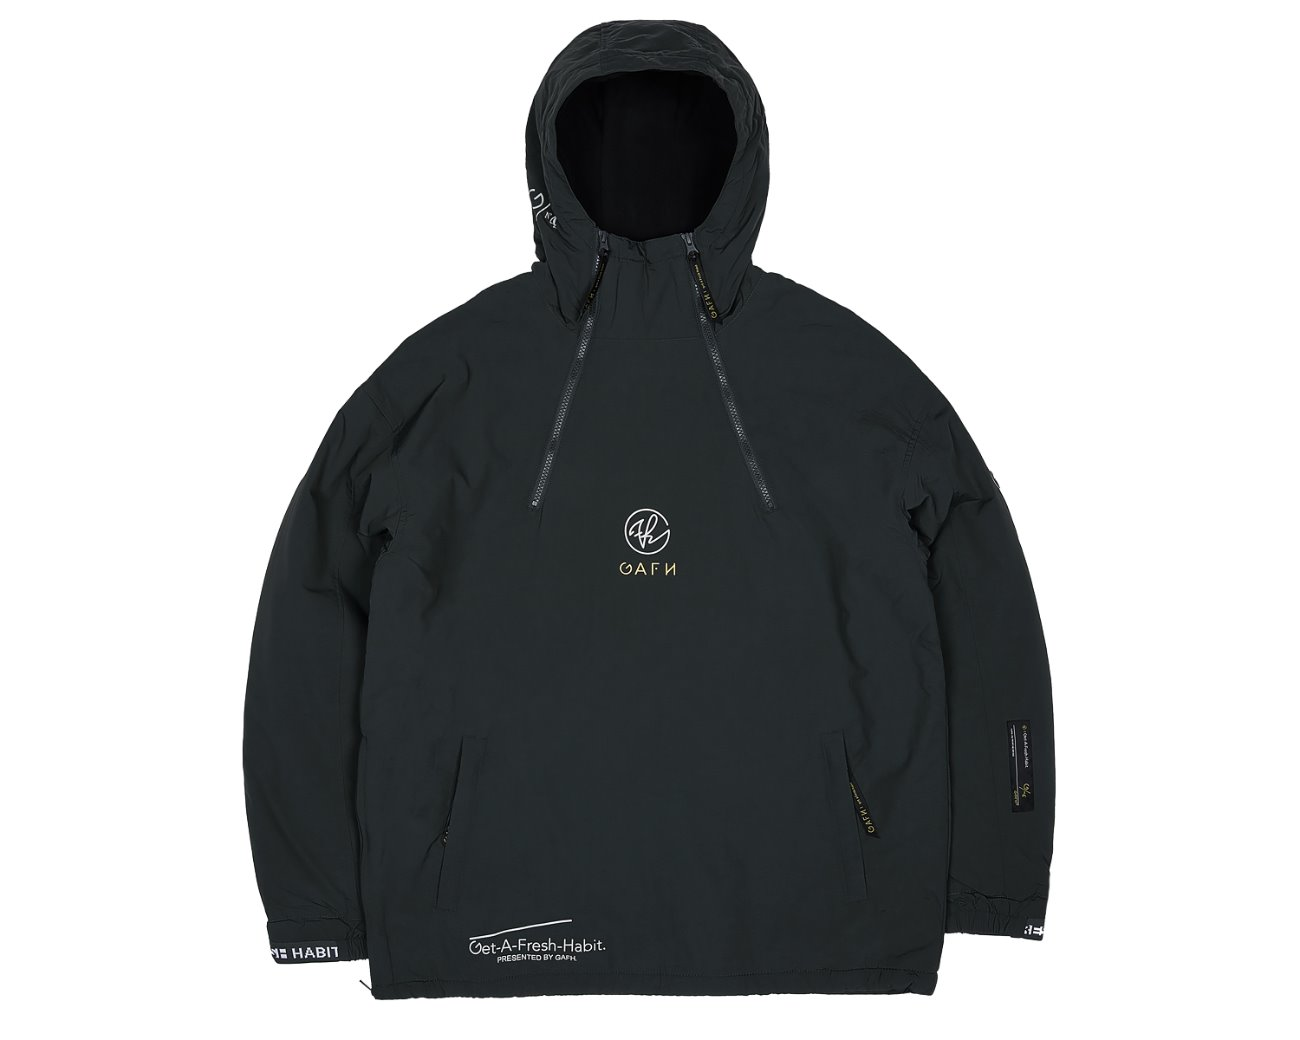 DOUBLE ZIP UP PULLOVER BLACK / GAFH